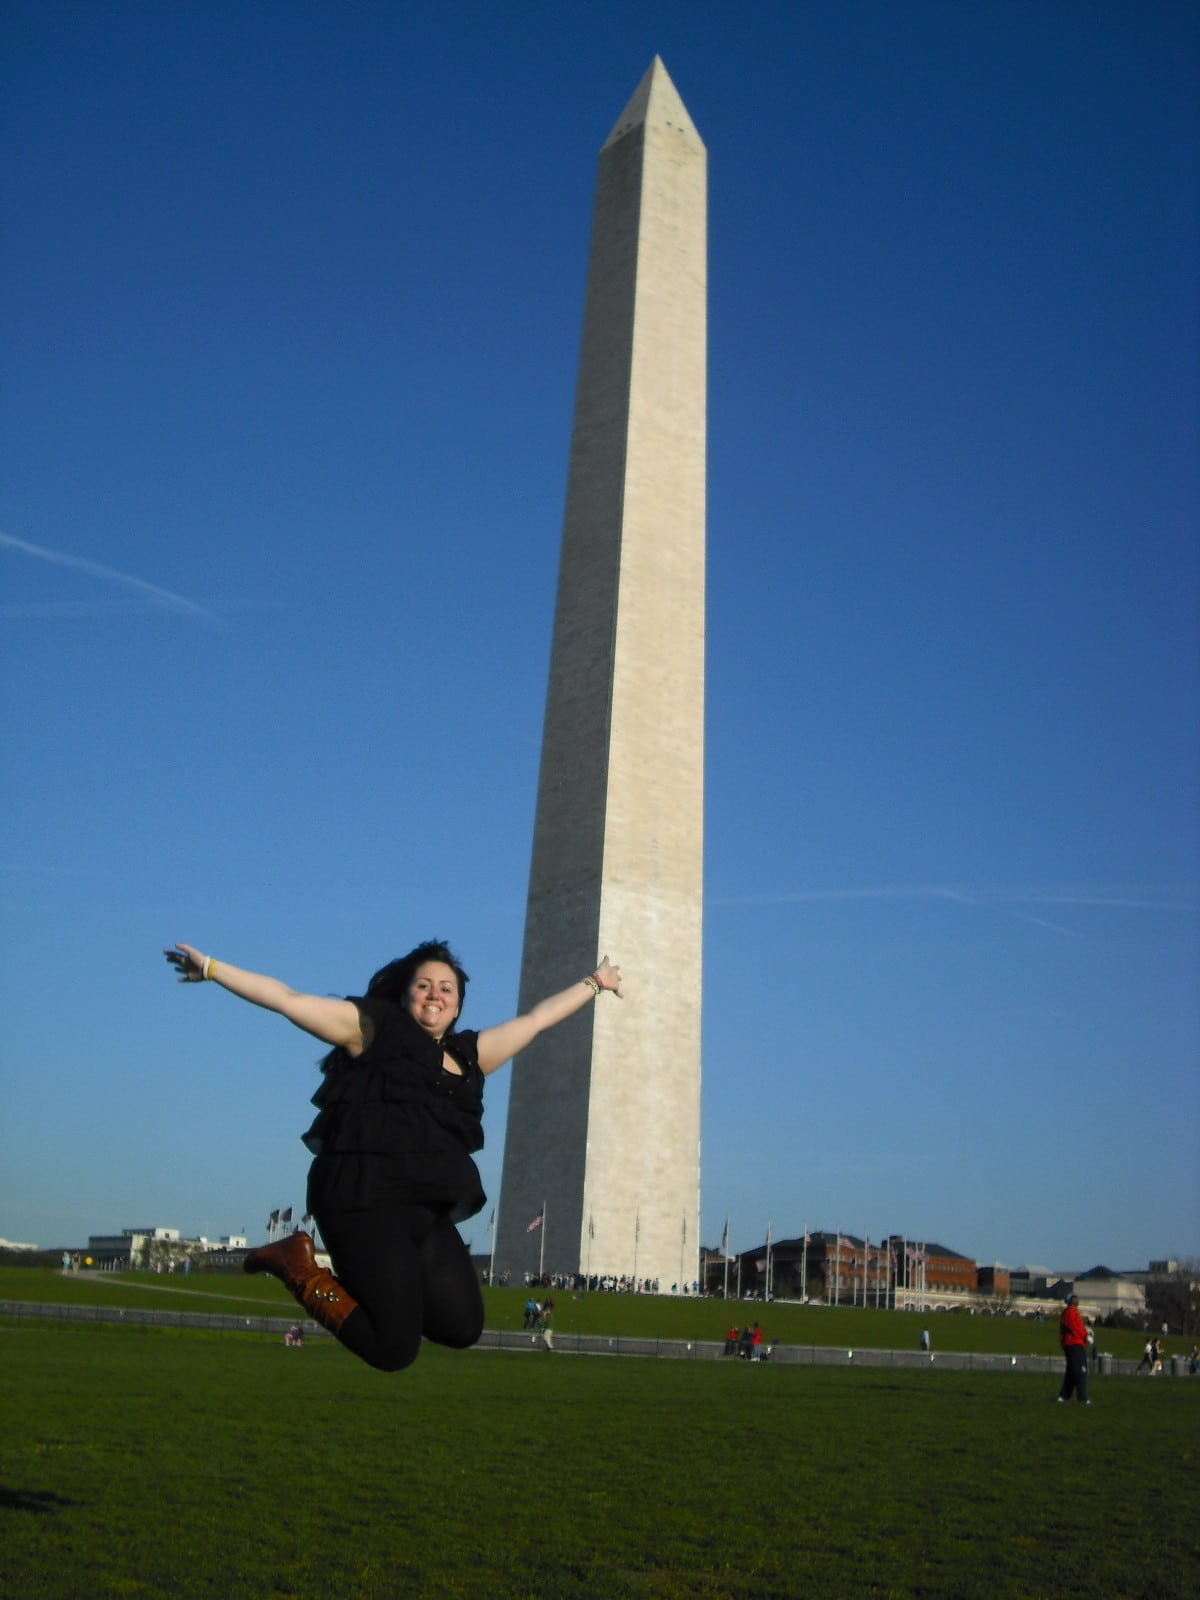 deniz jumping in front of the washington monument